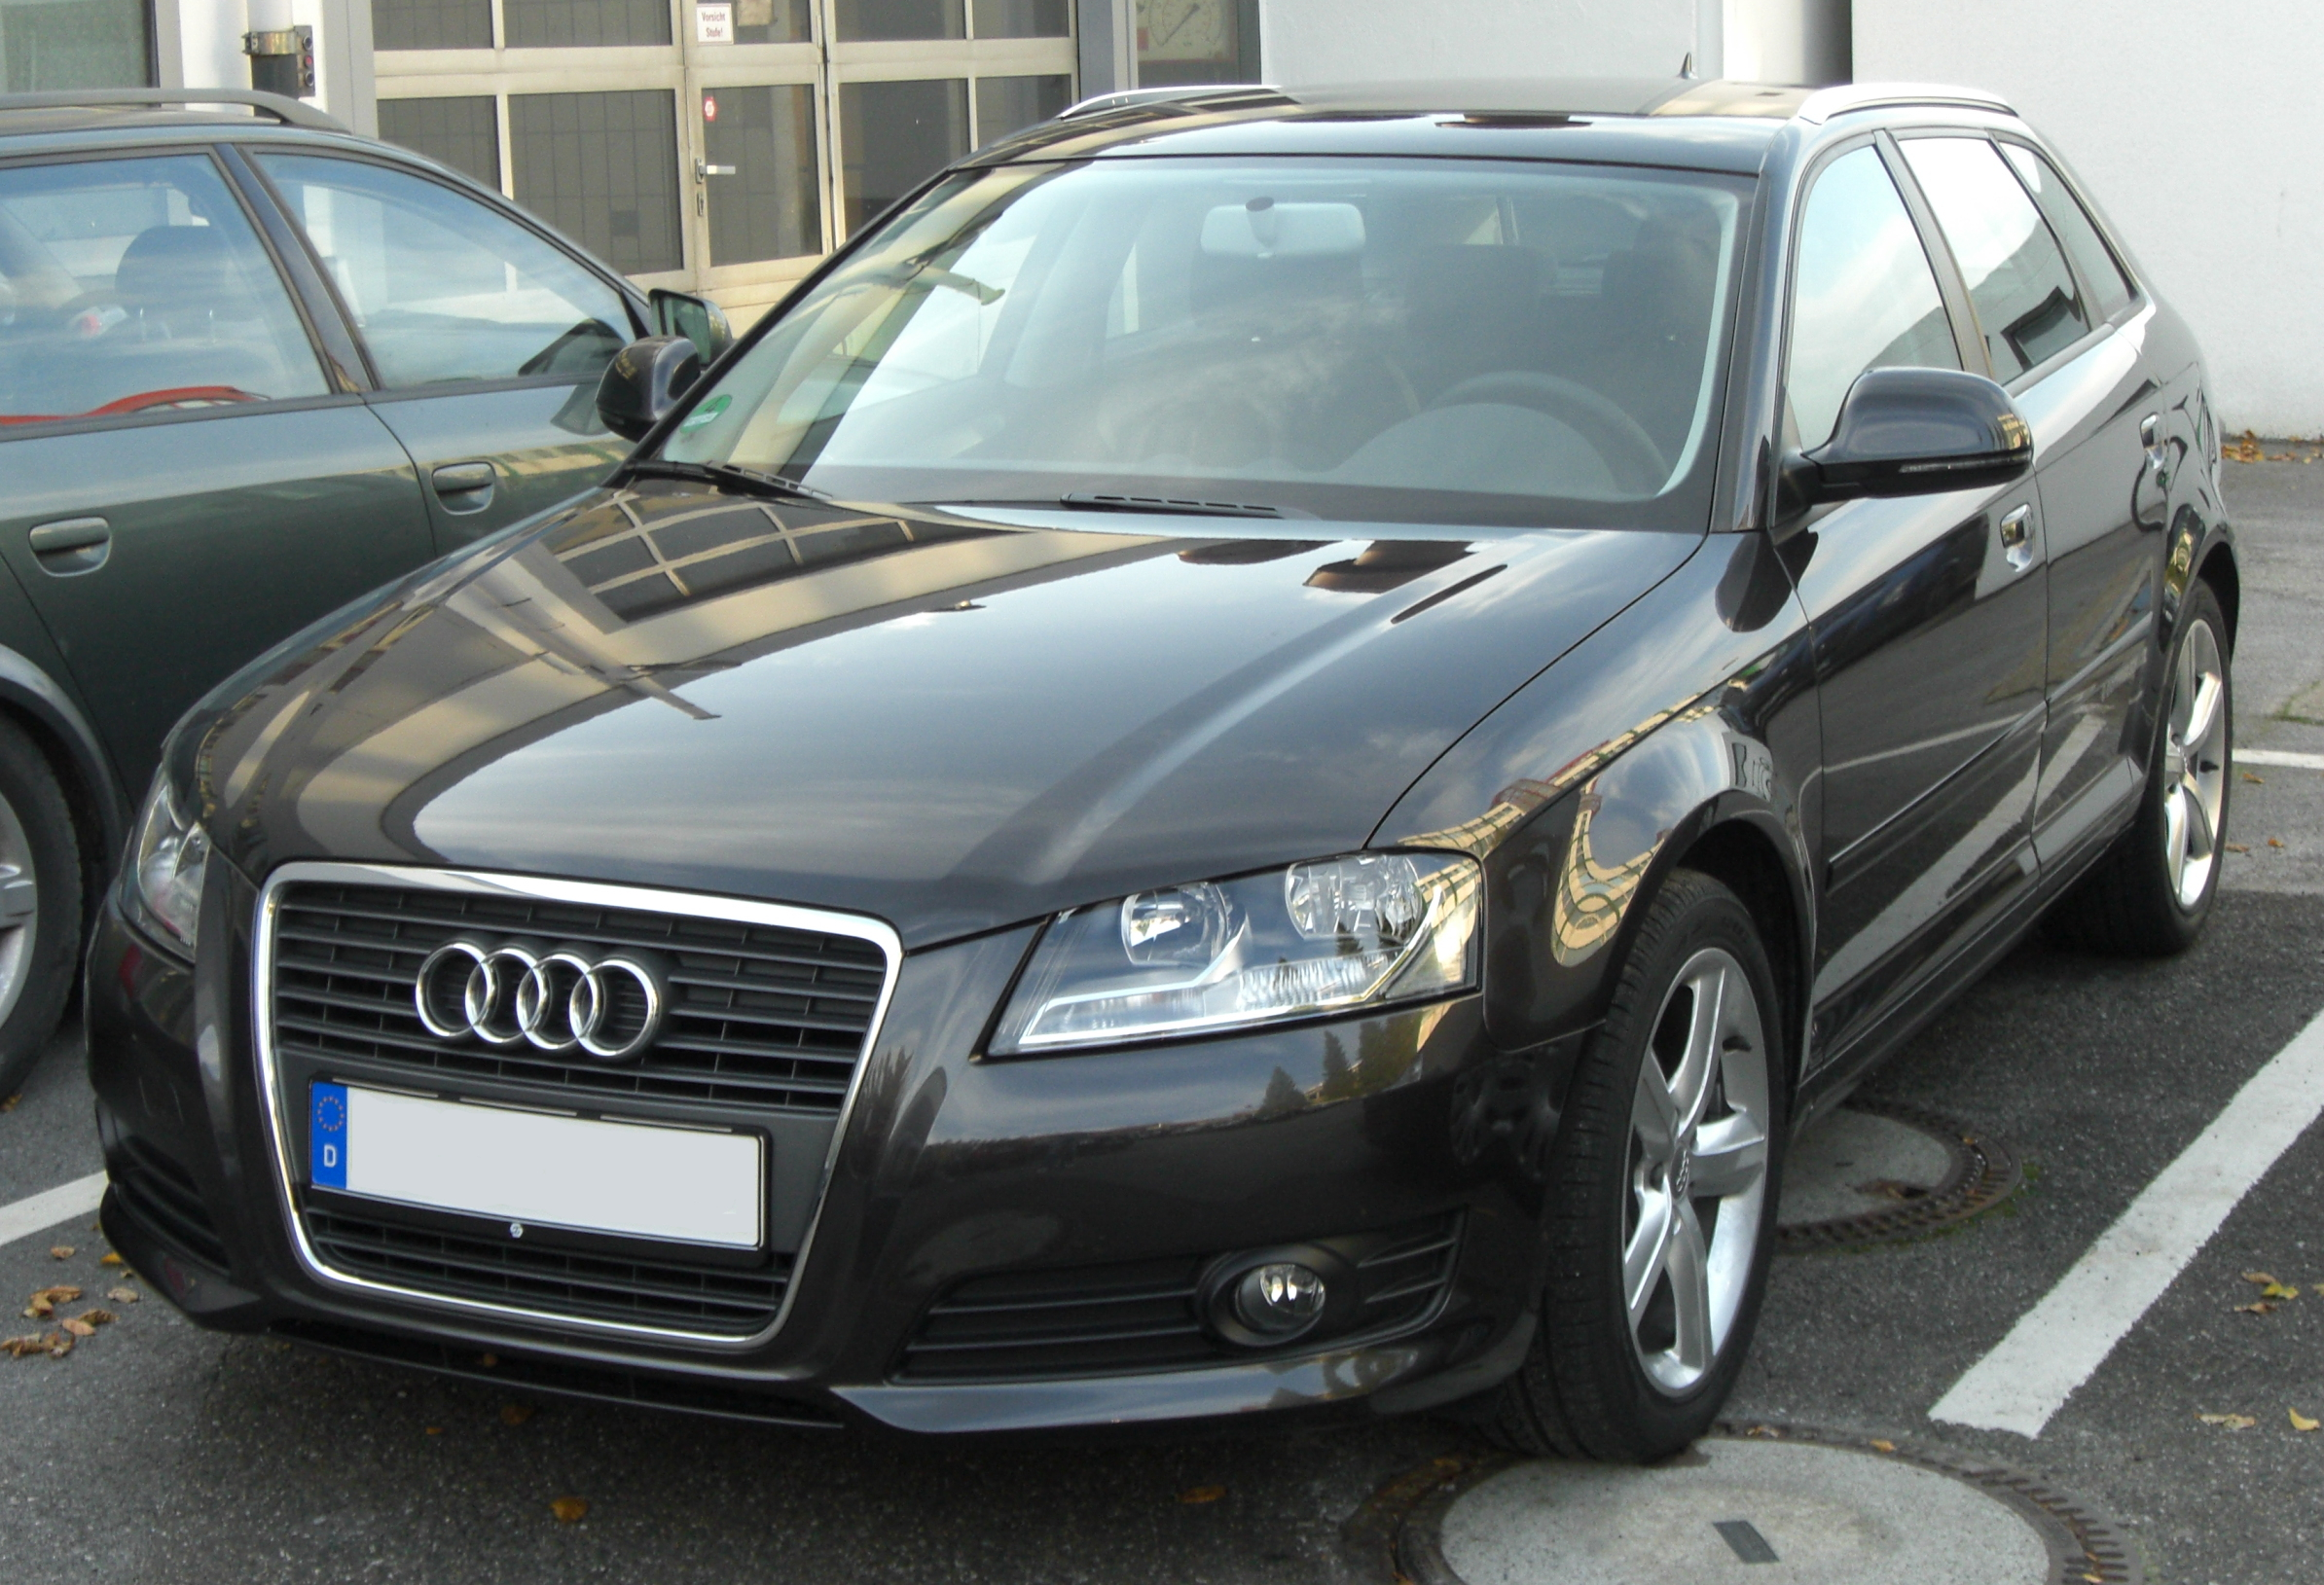 audi a3 sportback 1 9 tdi technical details history photos on better parts ltd. Black Bedroom Furniture Sets. Home Design Ideas